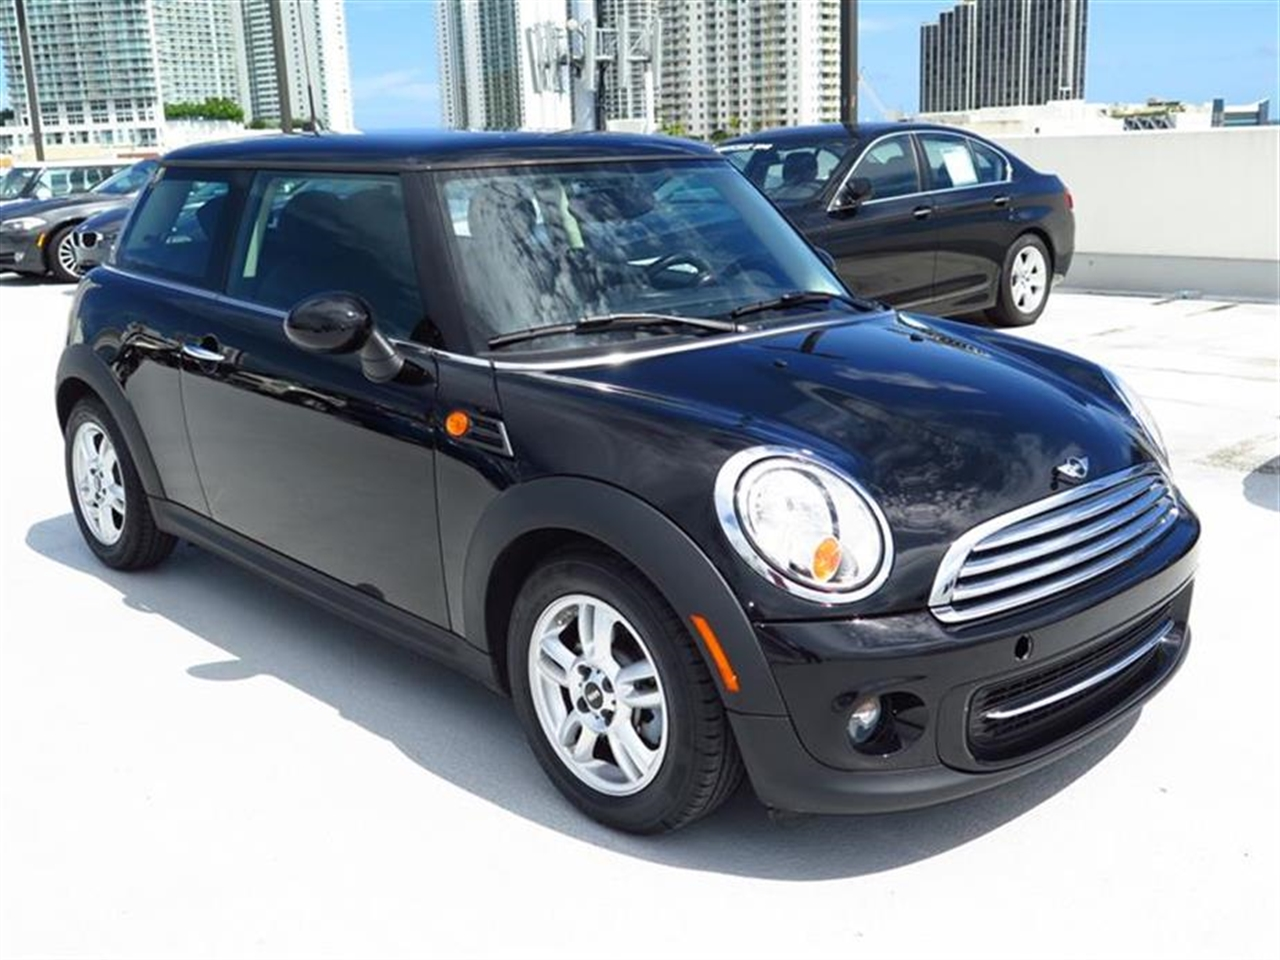 2013 MINI COOPER 2dr Cpe 13002 miles 1 rear cup holder 12V auxiliary pwr outlet in cockpit  lu